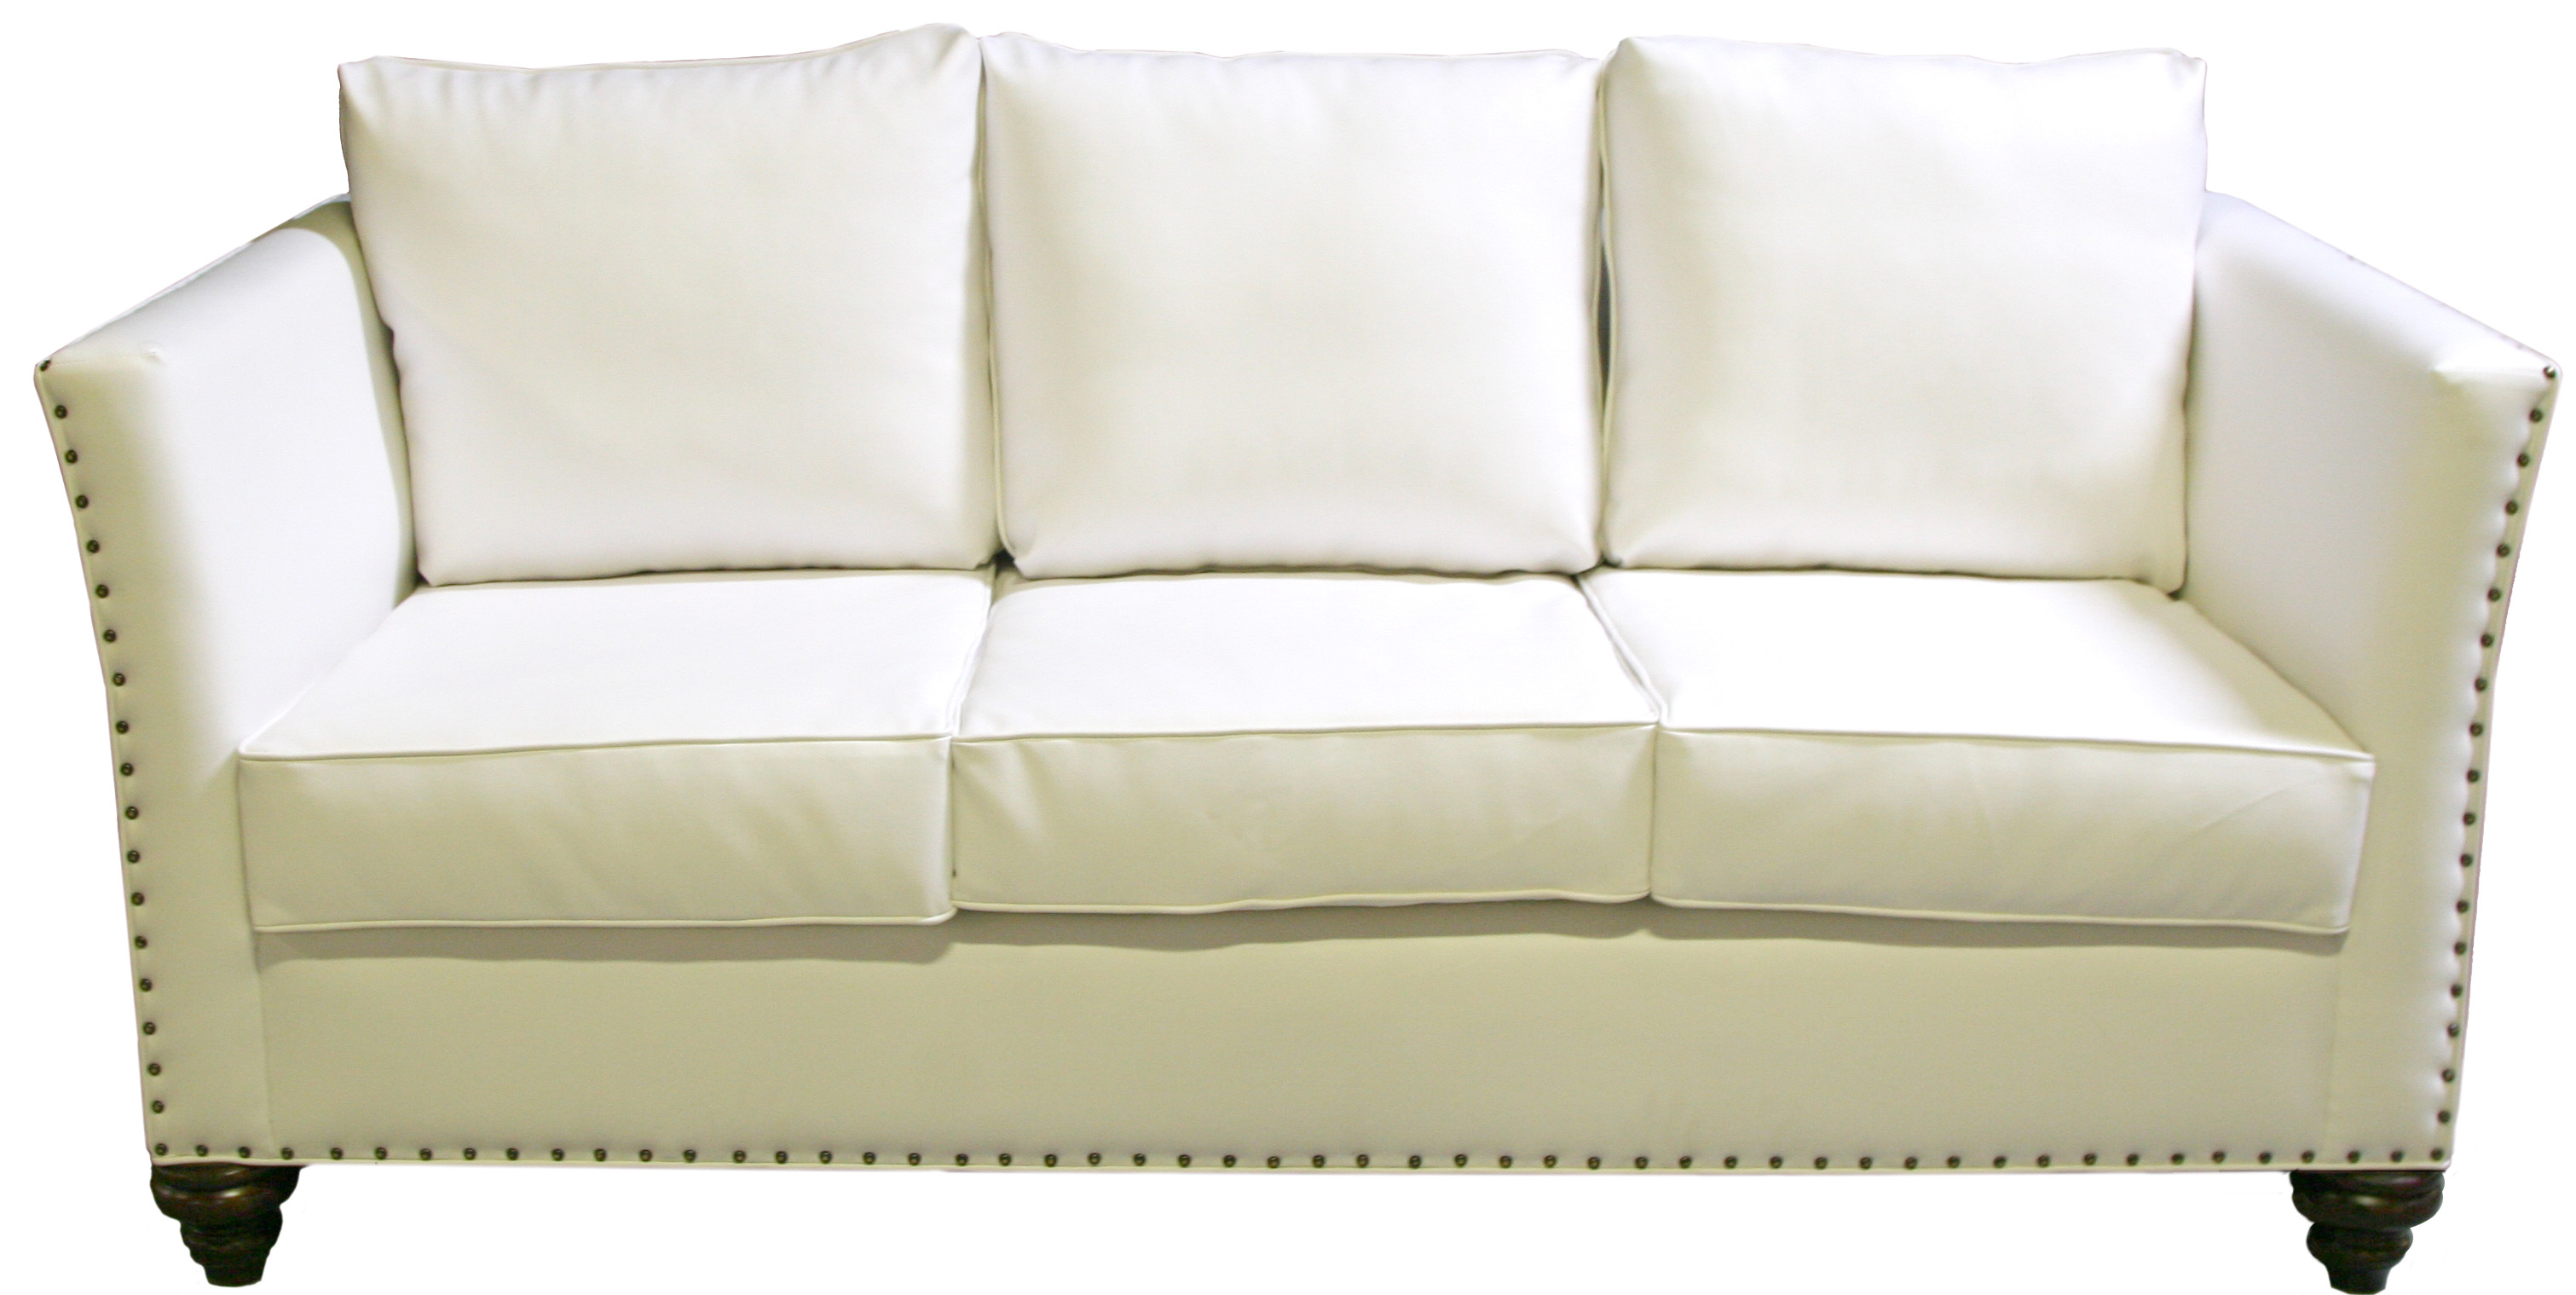 white leather sofa with nailheads pier 1 clearance nailhead designer8